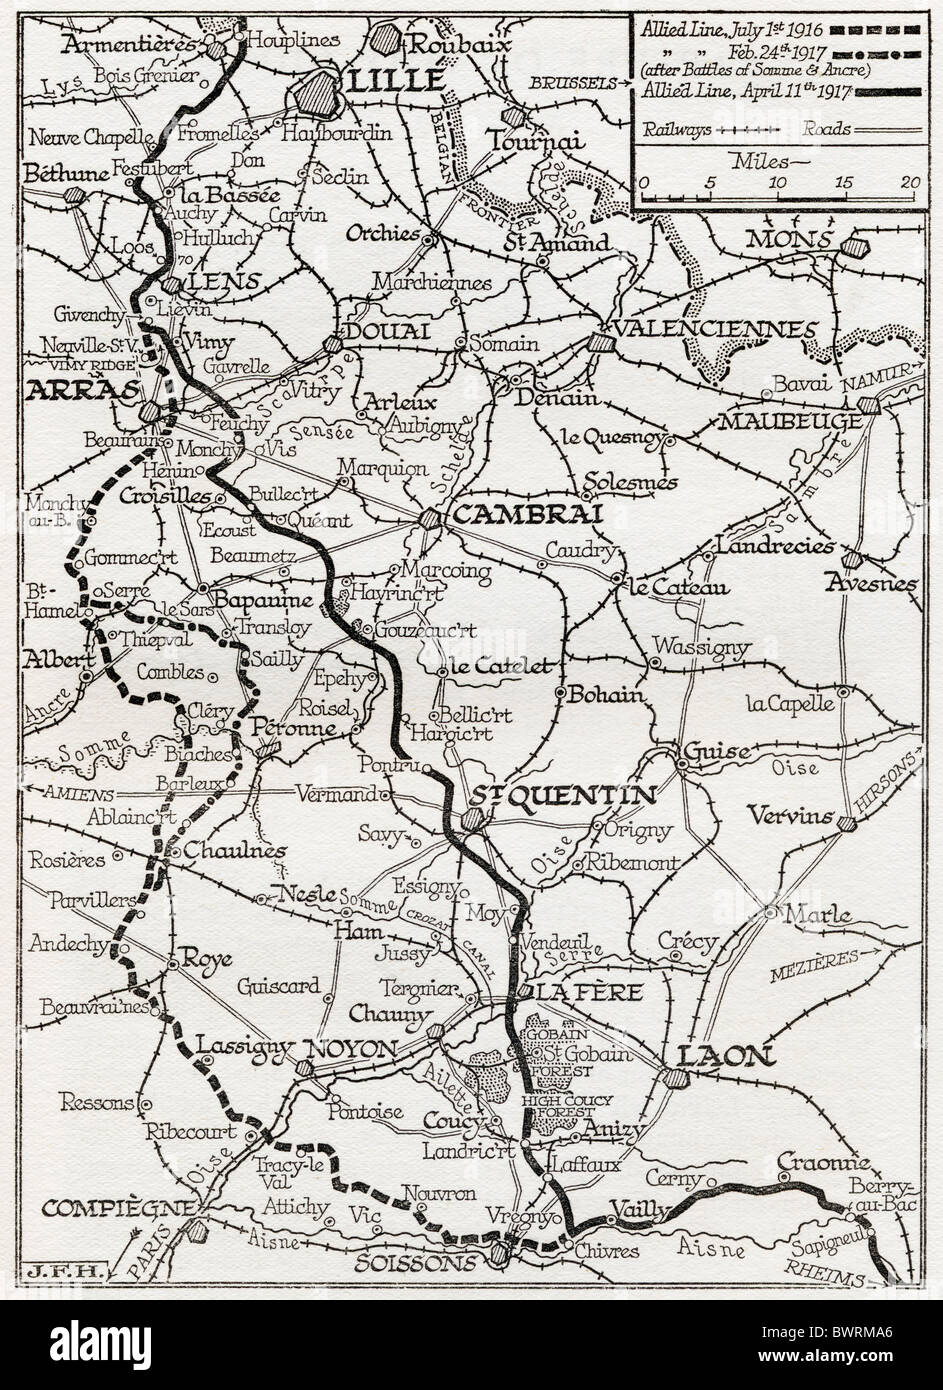 The Somme and the Ancre. Map shows lines occupied by the Allies from July 1916 to April 11, 1917. - Stock Image